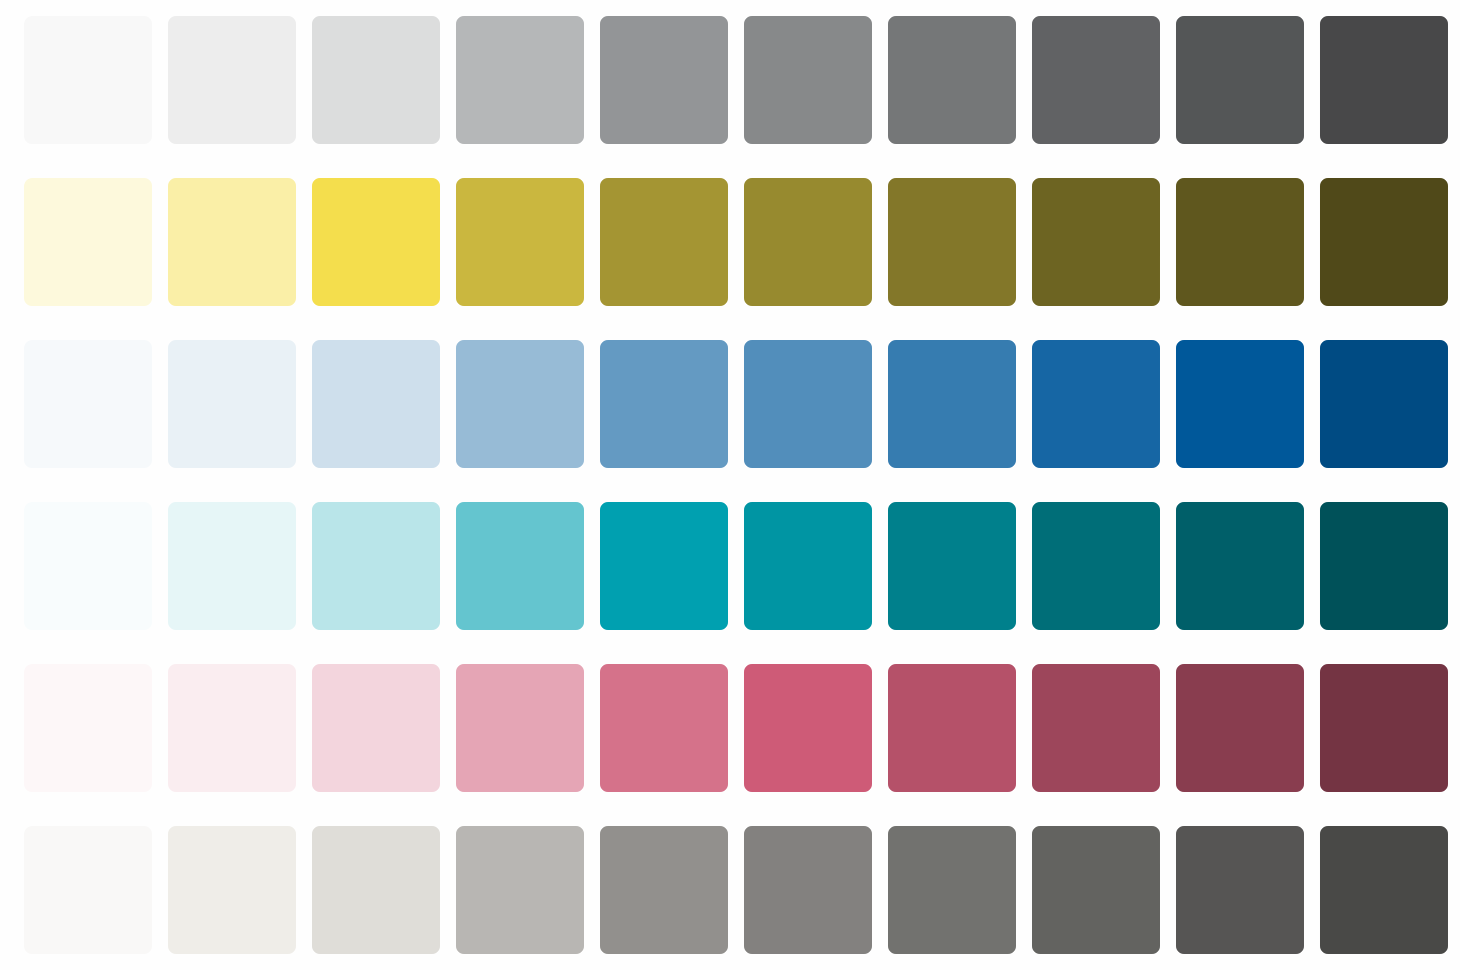 A palette based on Leonardo tool and our Aviary palette: each color has 10 variations of contrast.